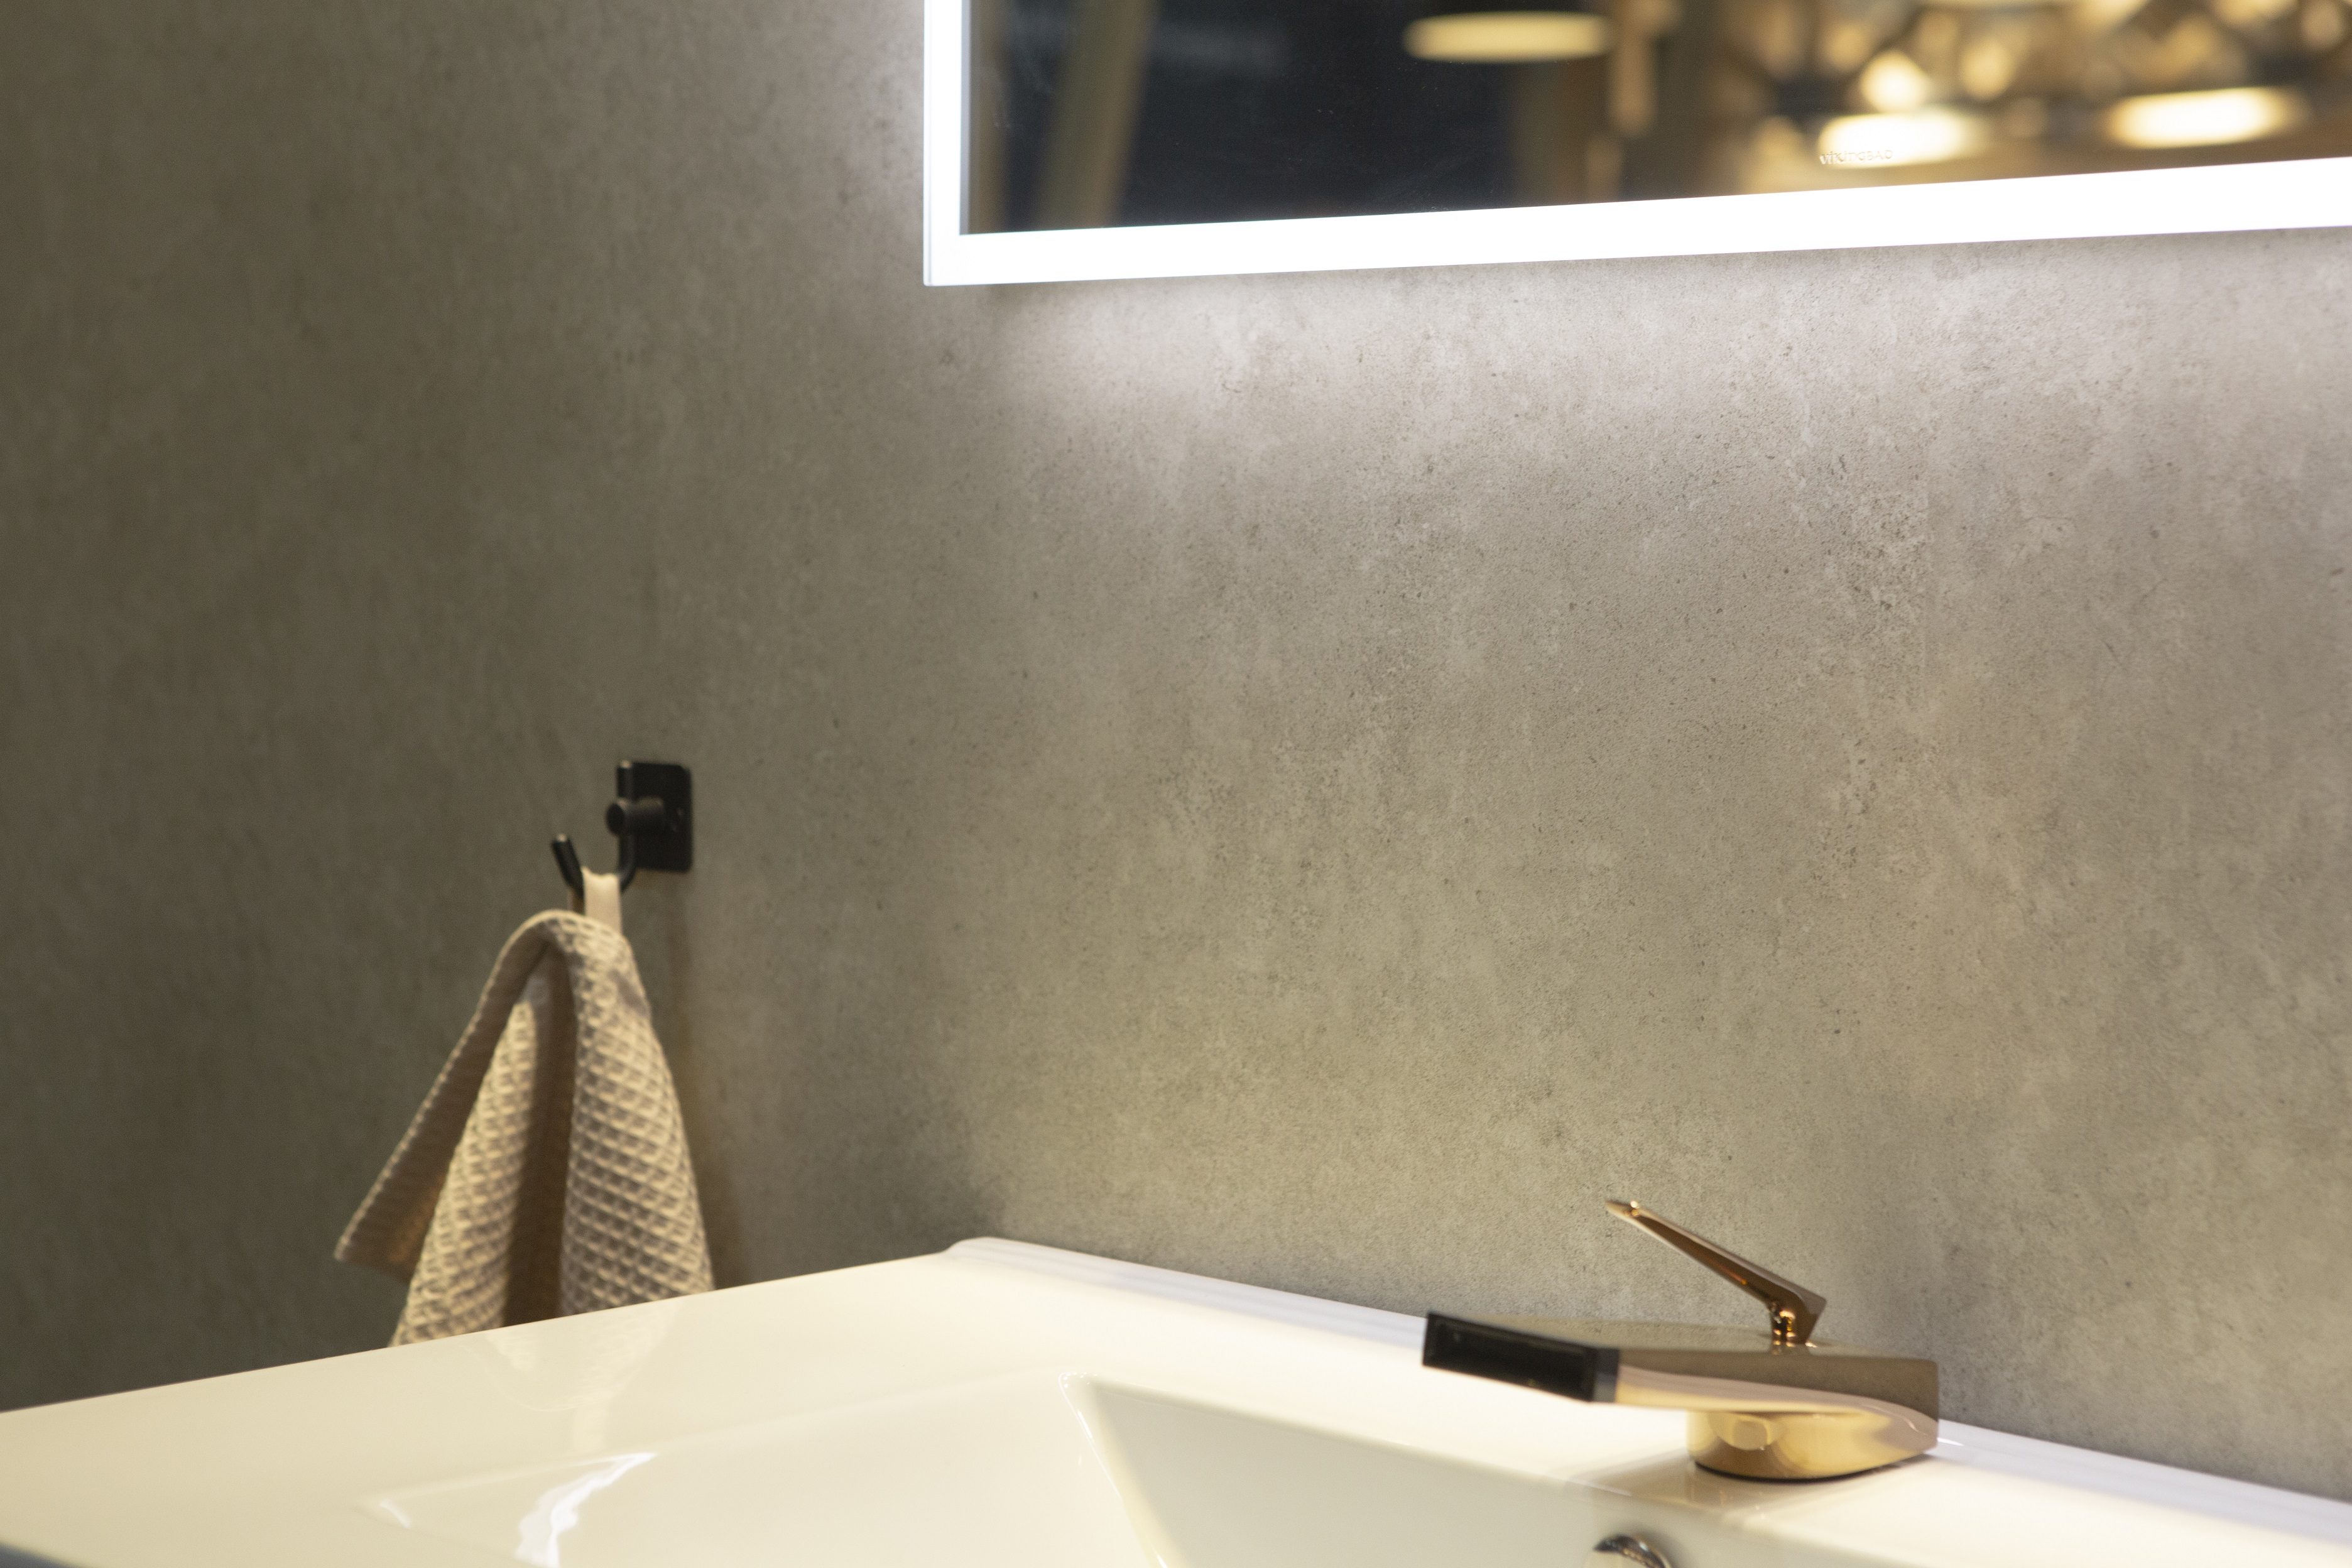 Fibo Systems To Introduce New Decorative Waterproof Wall Panel System To The North American Market At The 2020 International Builders Show